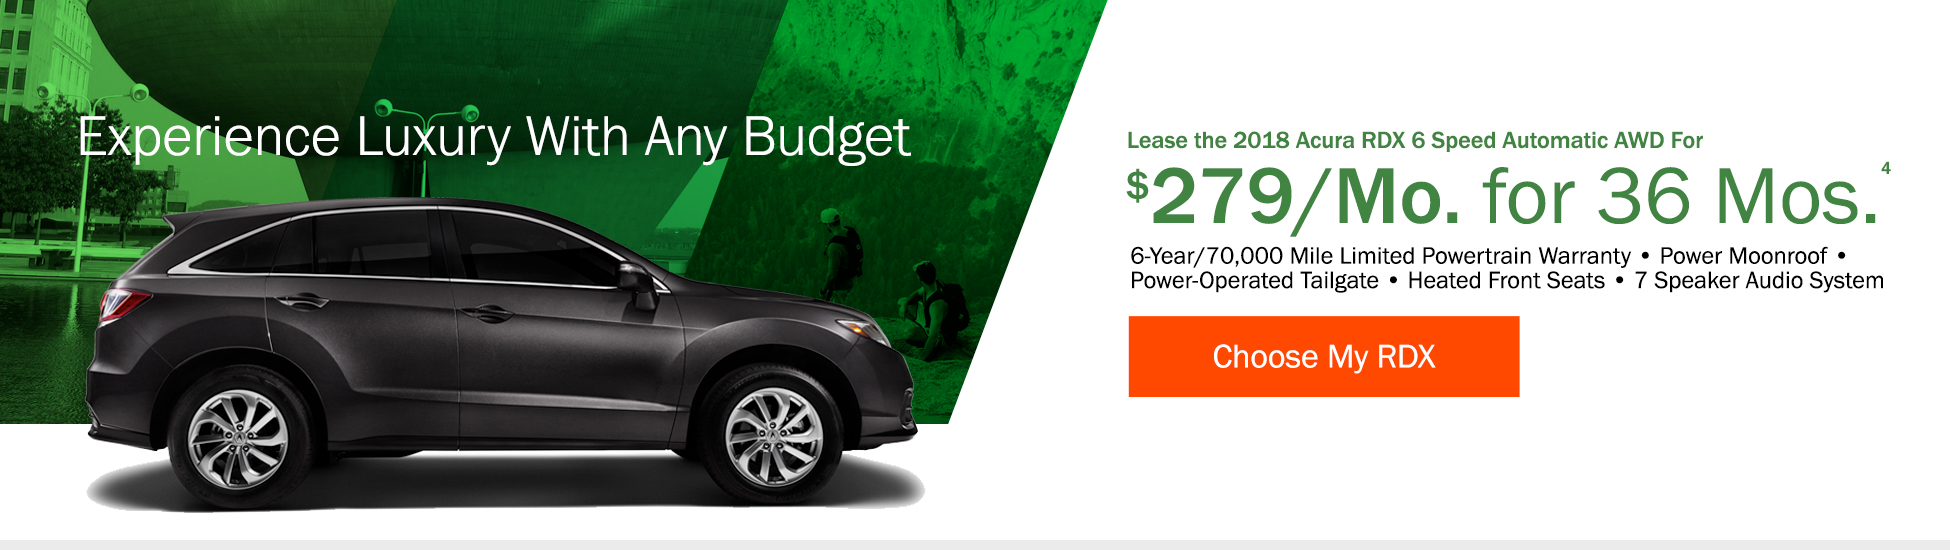 Lease the 2018 Acura RDX 6 Speed Automatic AWD for $299 per month for 36 months - Shop RDX